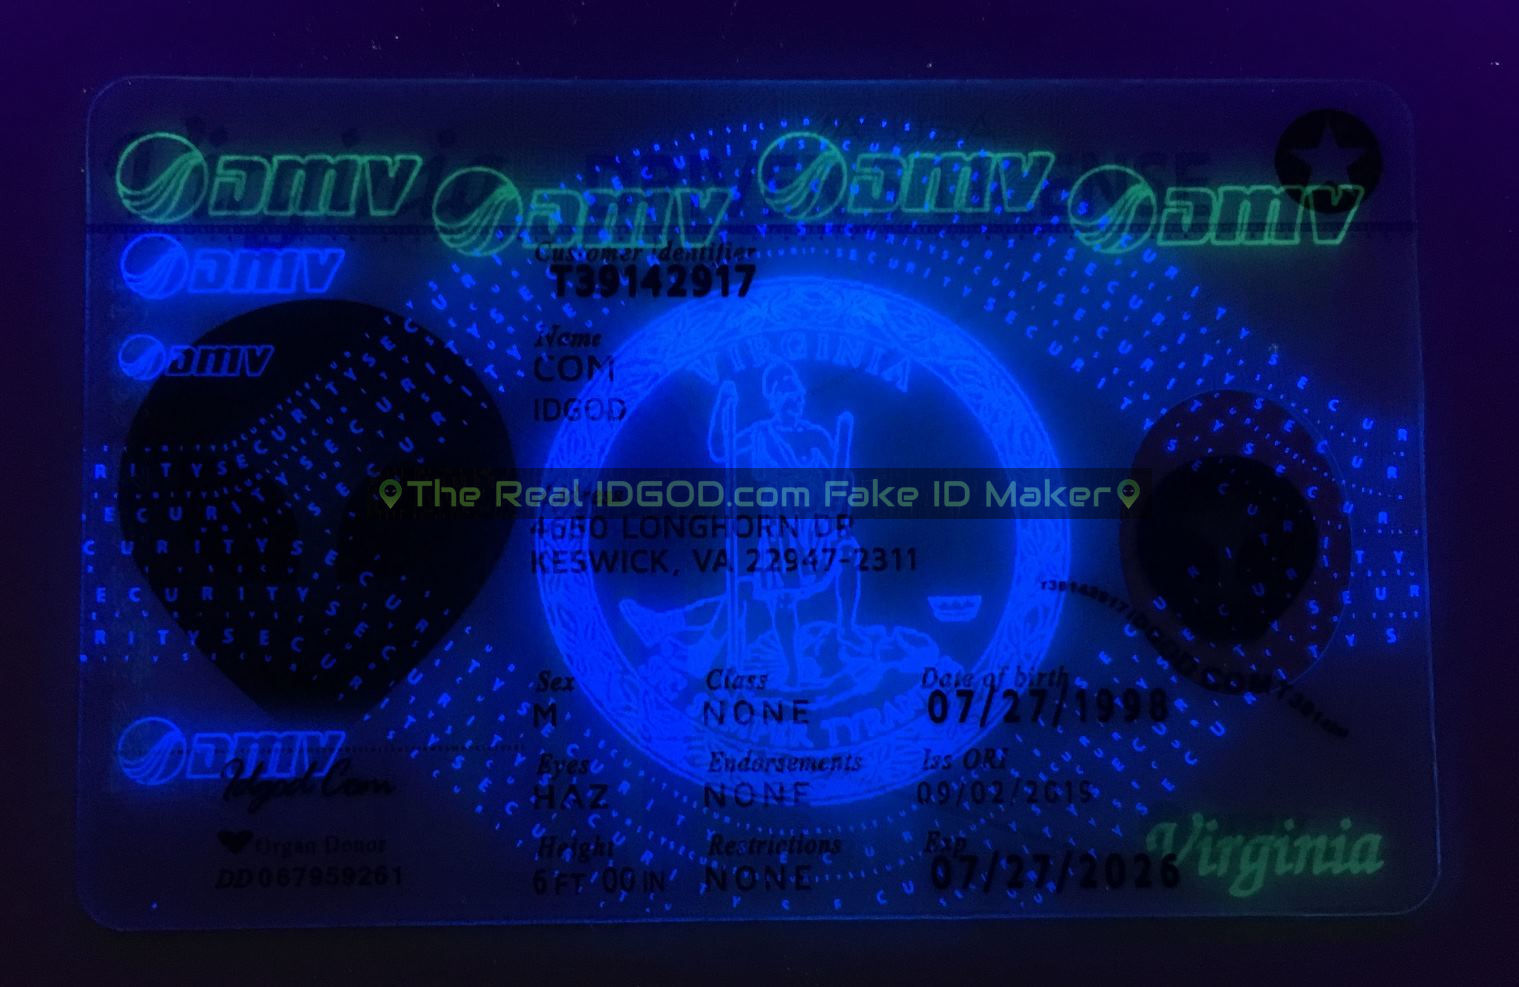 Virginia fake id card ultraviolet ink design under blacklight